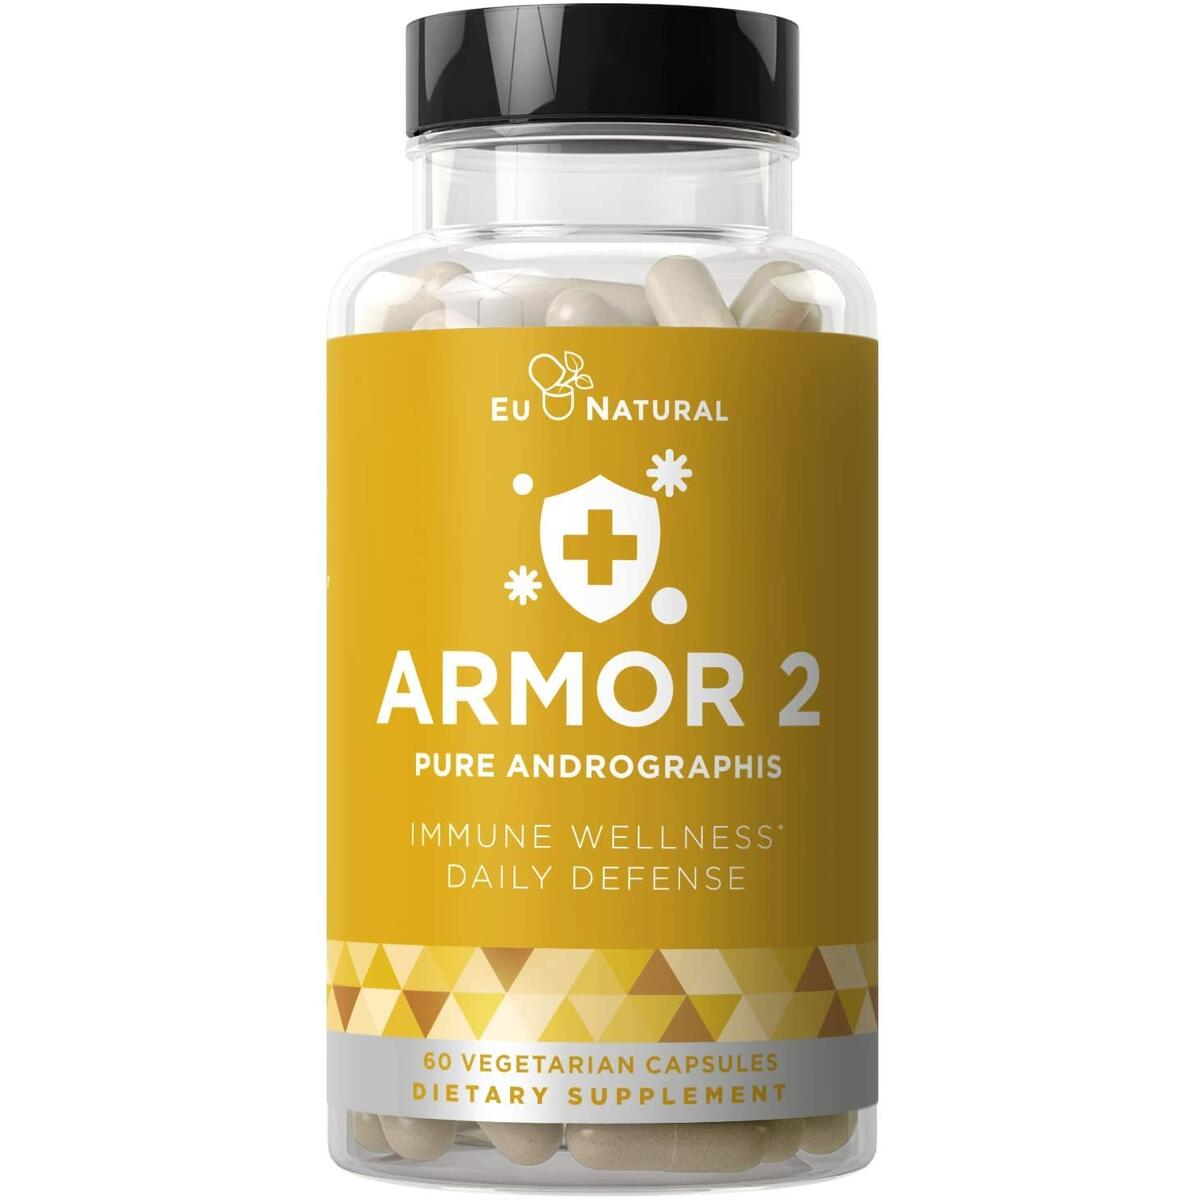 ARMOR 2 ANDROGRAPHIS Pure 800 MG – Healthy Immunity Function & Immune Care for the Seasons